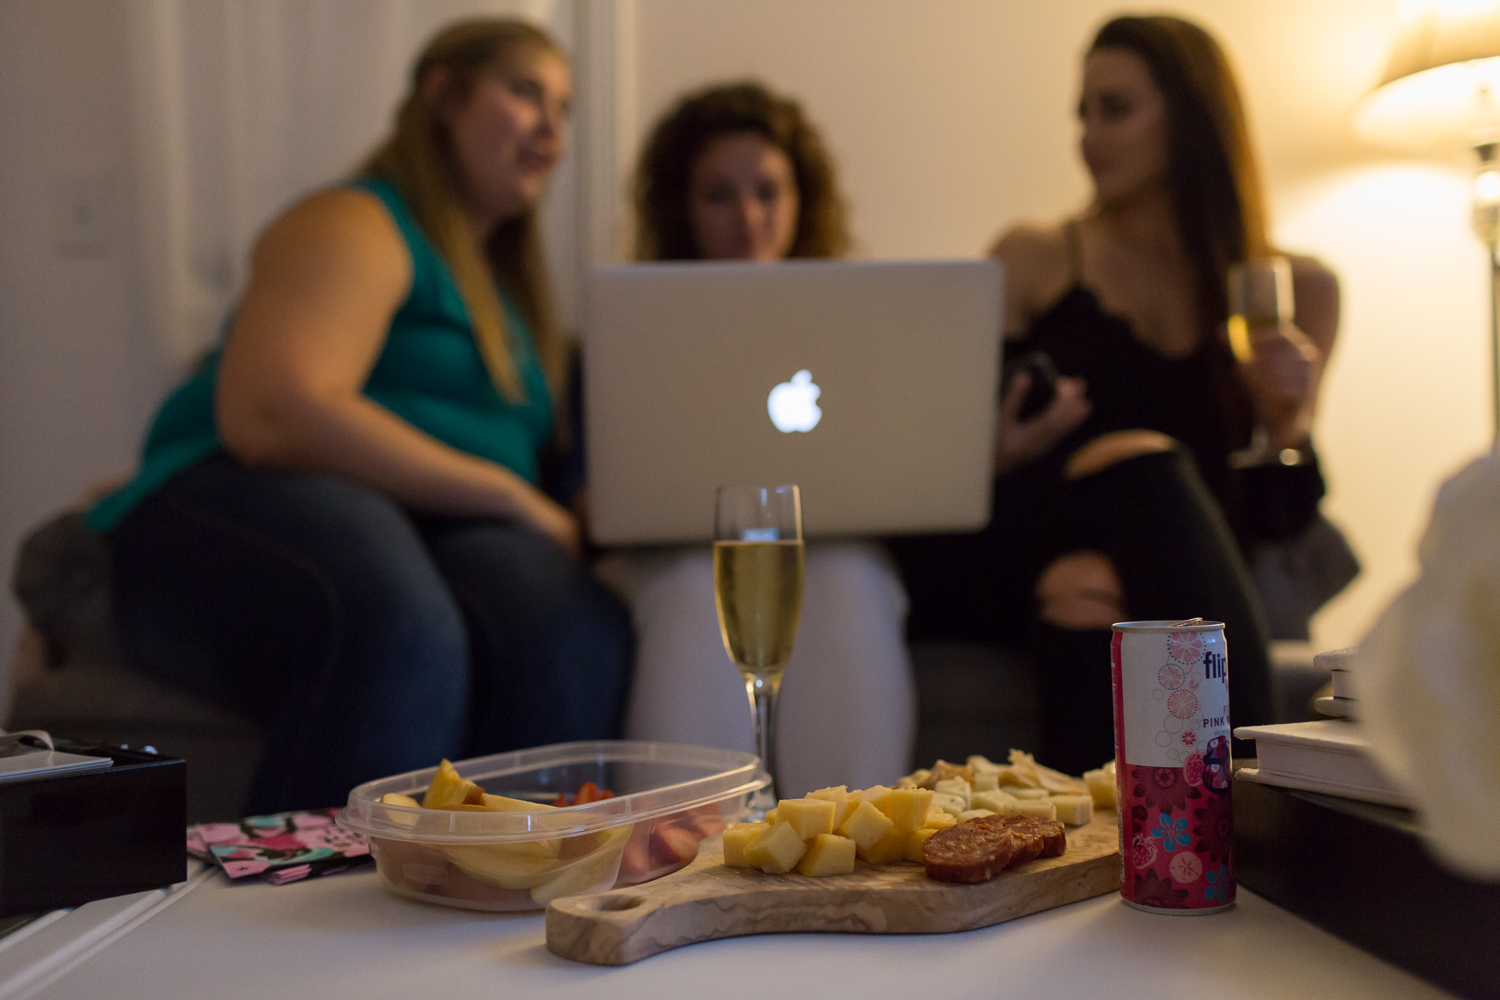 Drinks and snacks laid out on a table in front of women looking at a computer